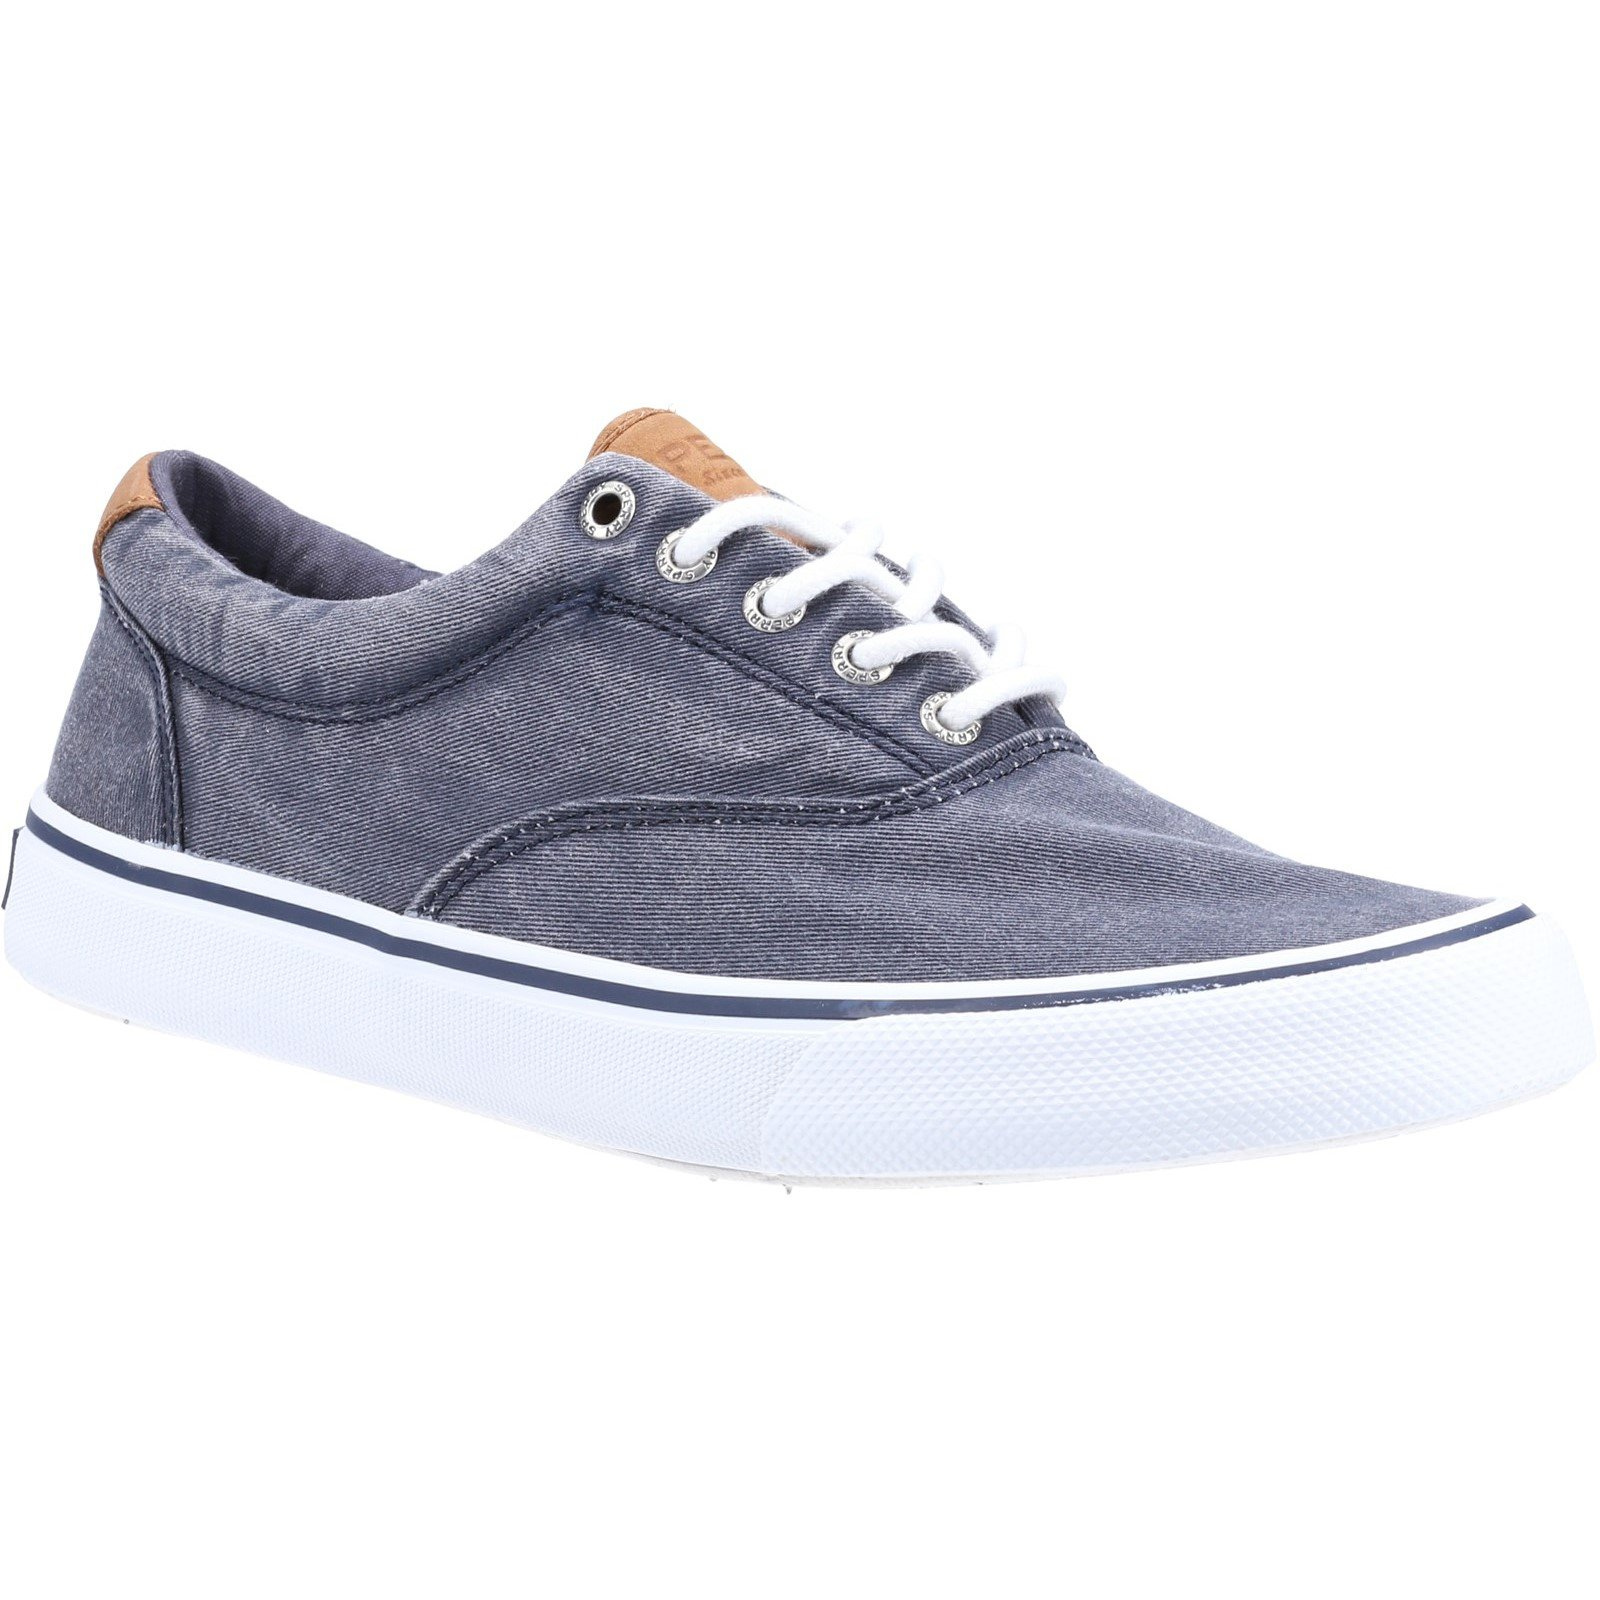 Sperry Men's Striper II CVO Canvas Trainers Various Colours 32397 - Salt Washed Navy 12